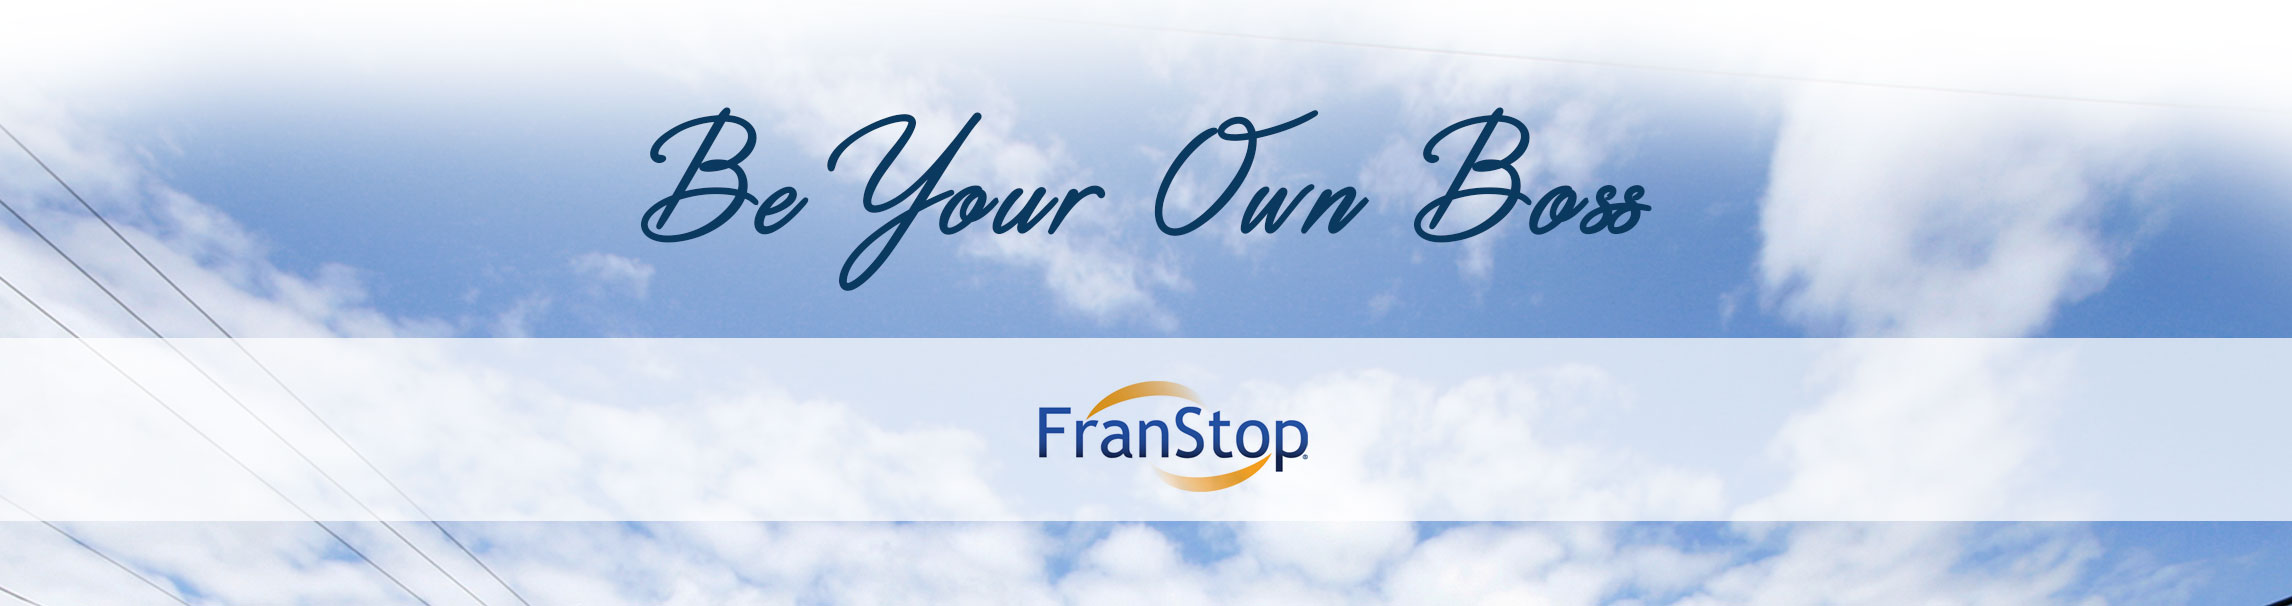 Be_Your_Own_Boss_Buy_Franchising_Financing_FranStop